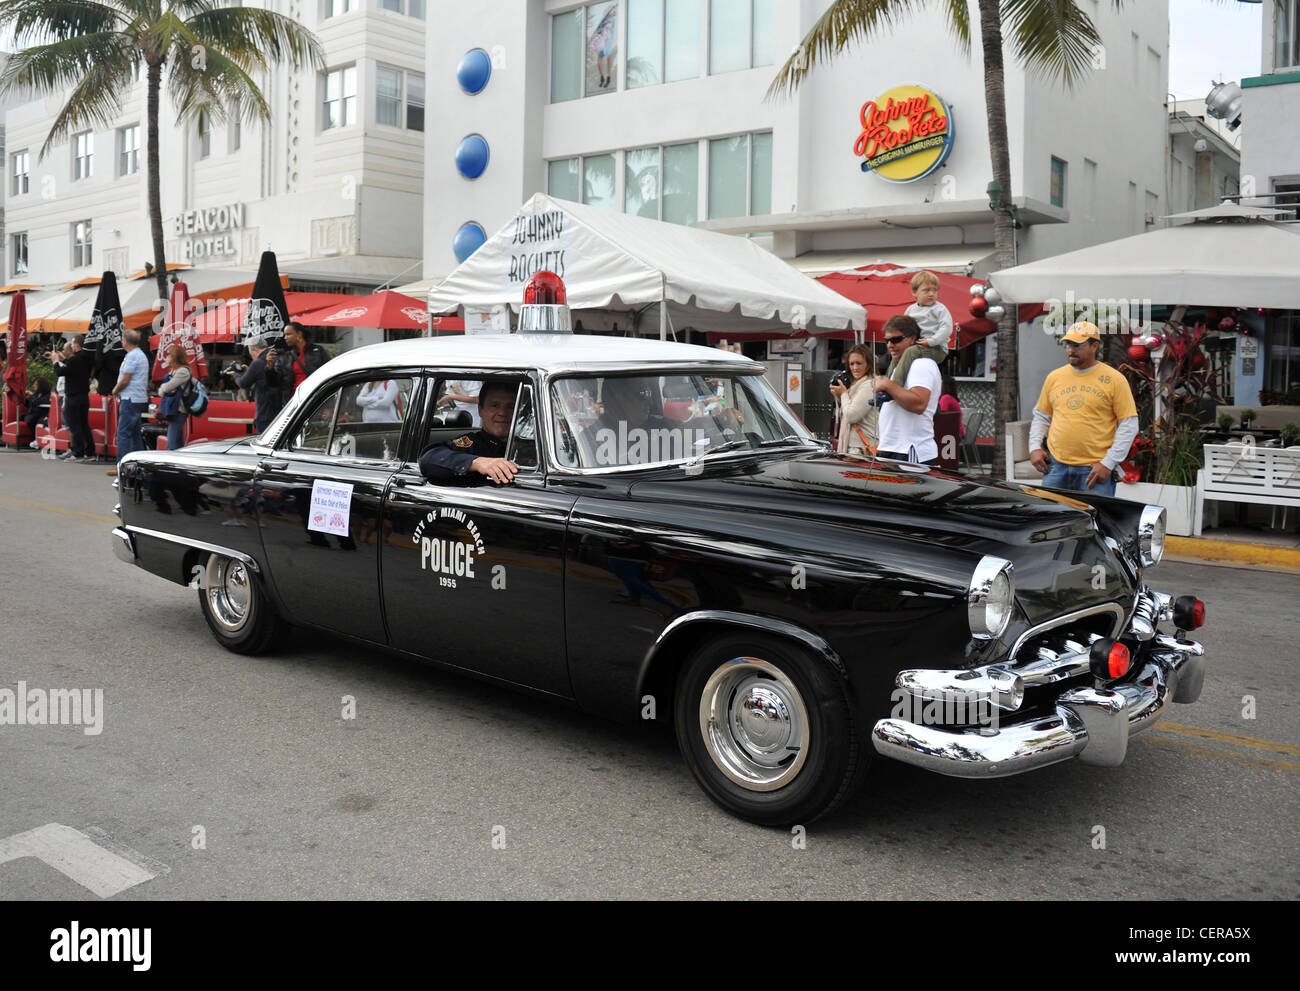 Vintage Police Car Stock Photos & Vintage Police Car Stock Images ...